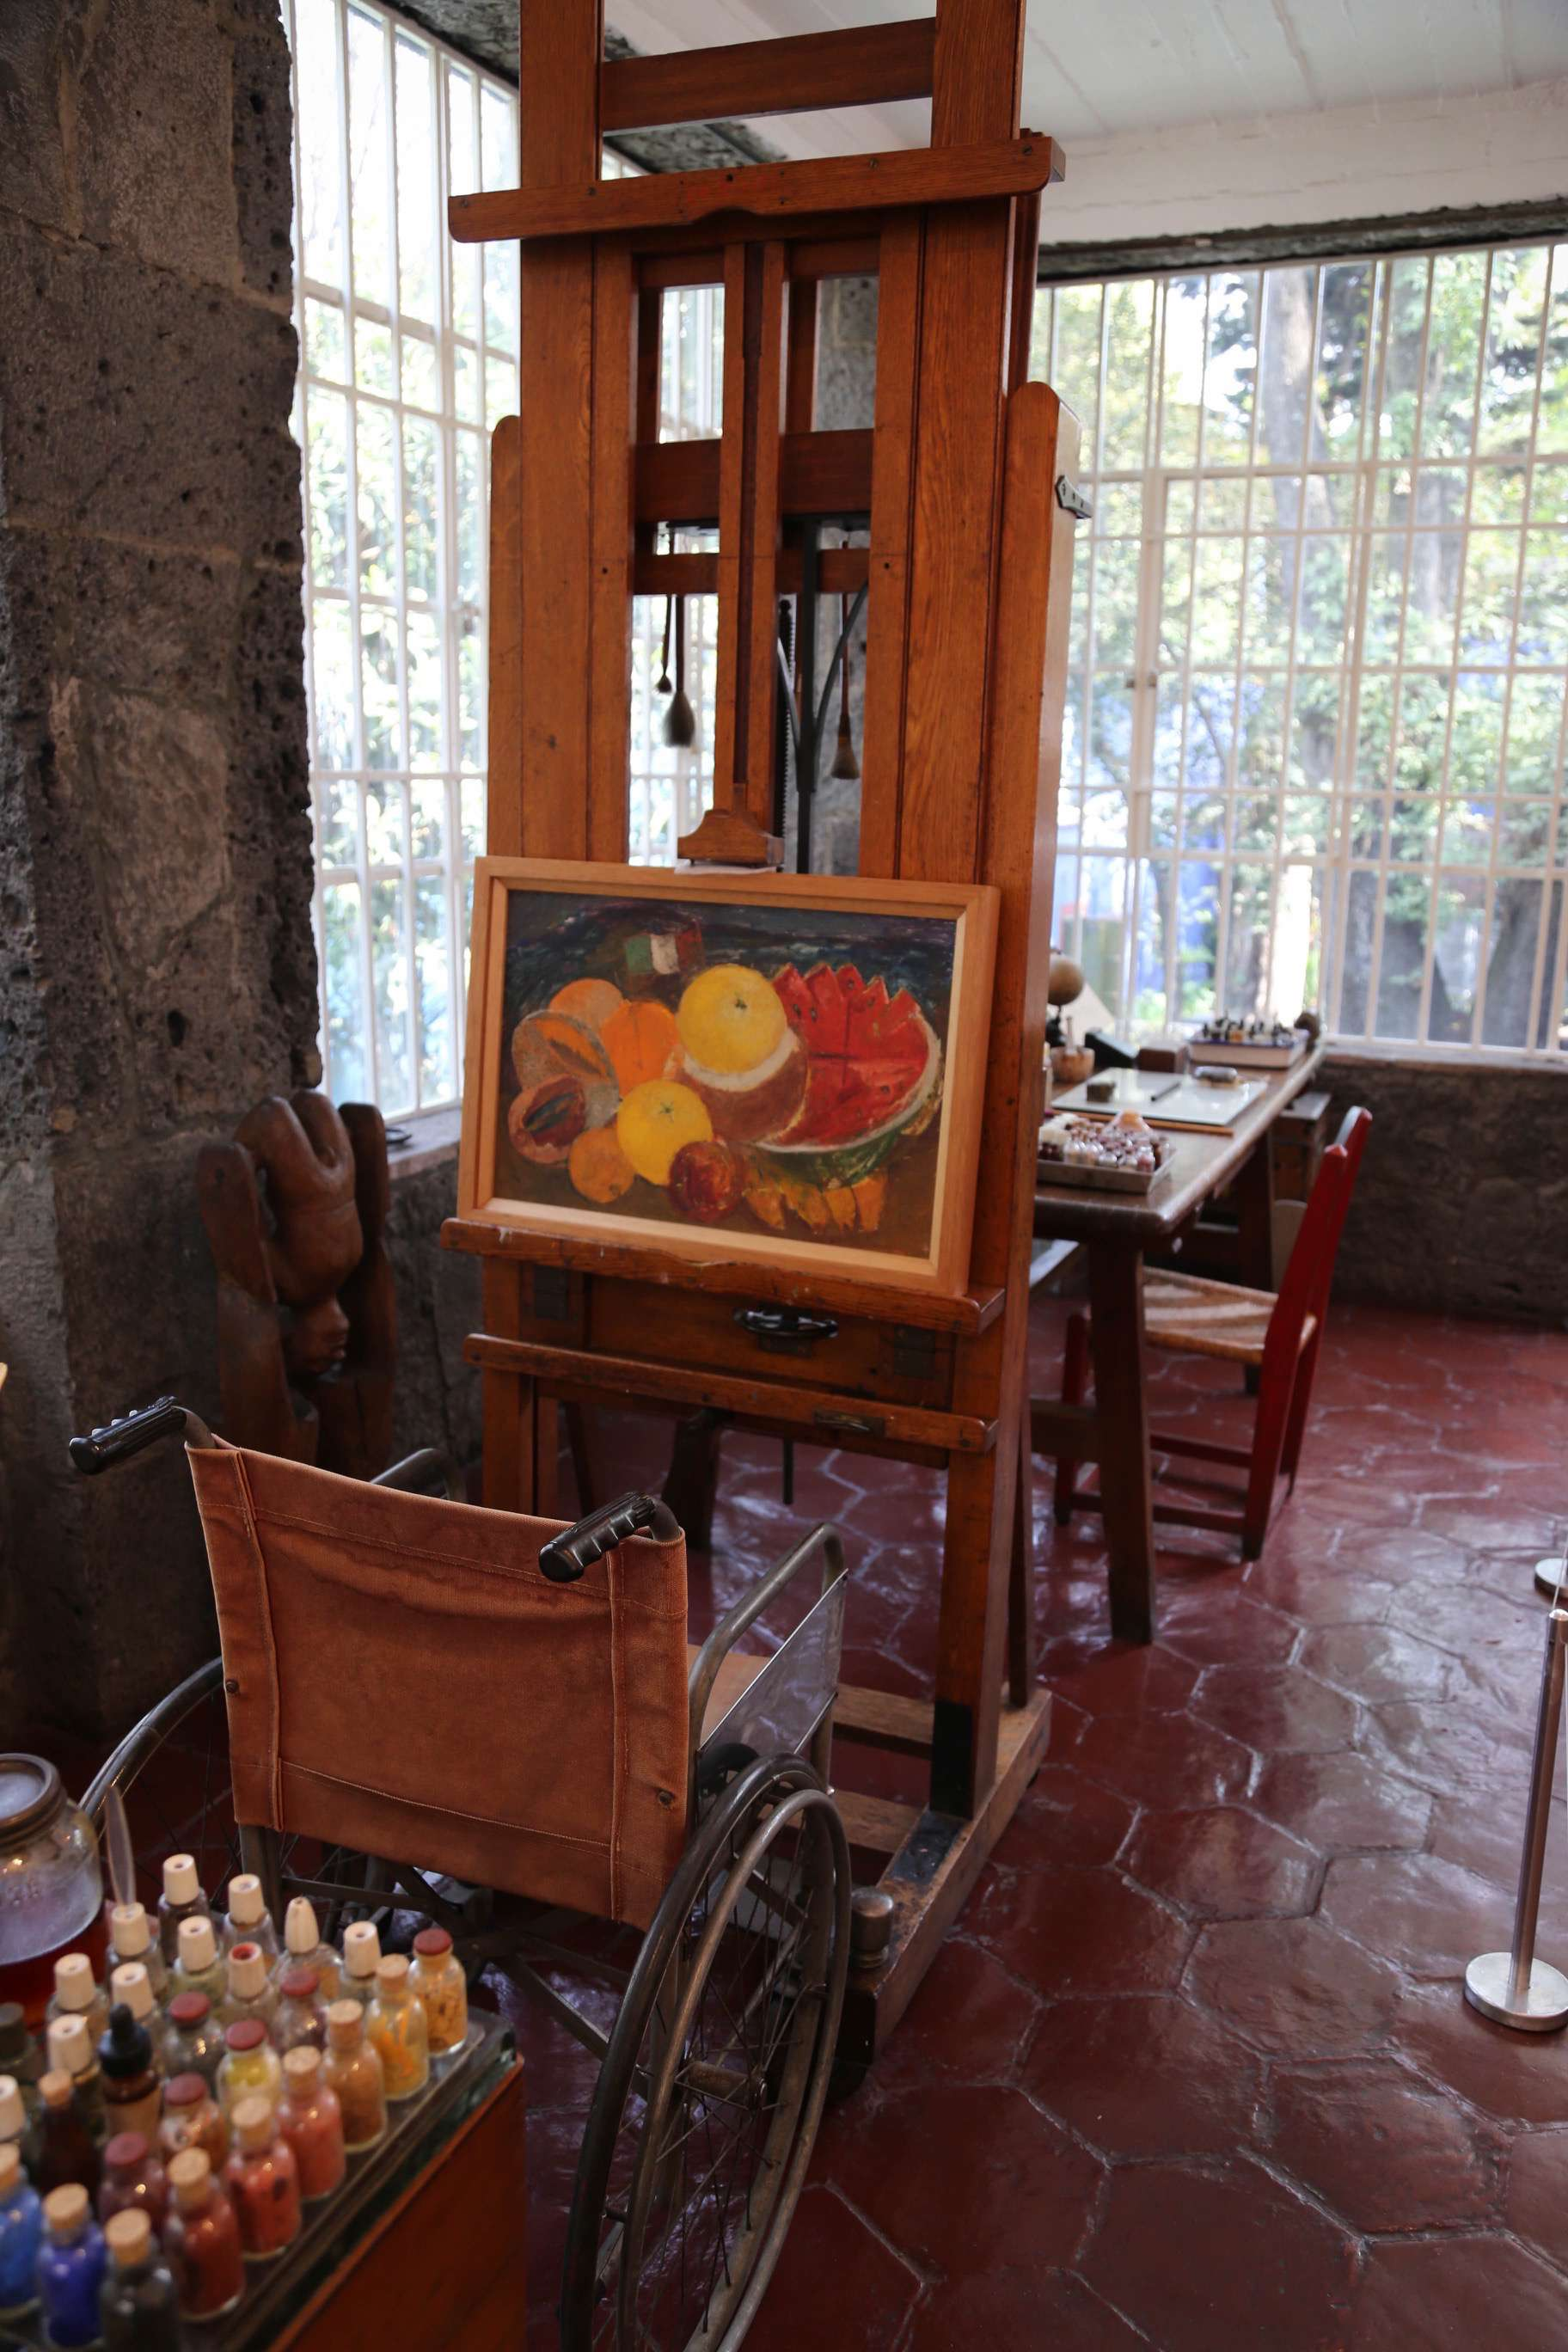 This ingenious easel was a gift from the Rockefellers who were fond of Frida, despite their frustration with Diego Rivera.